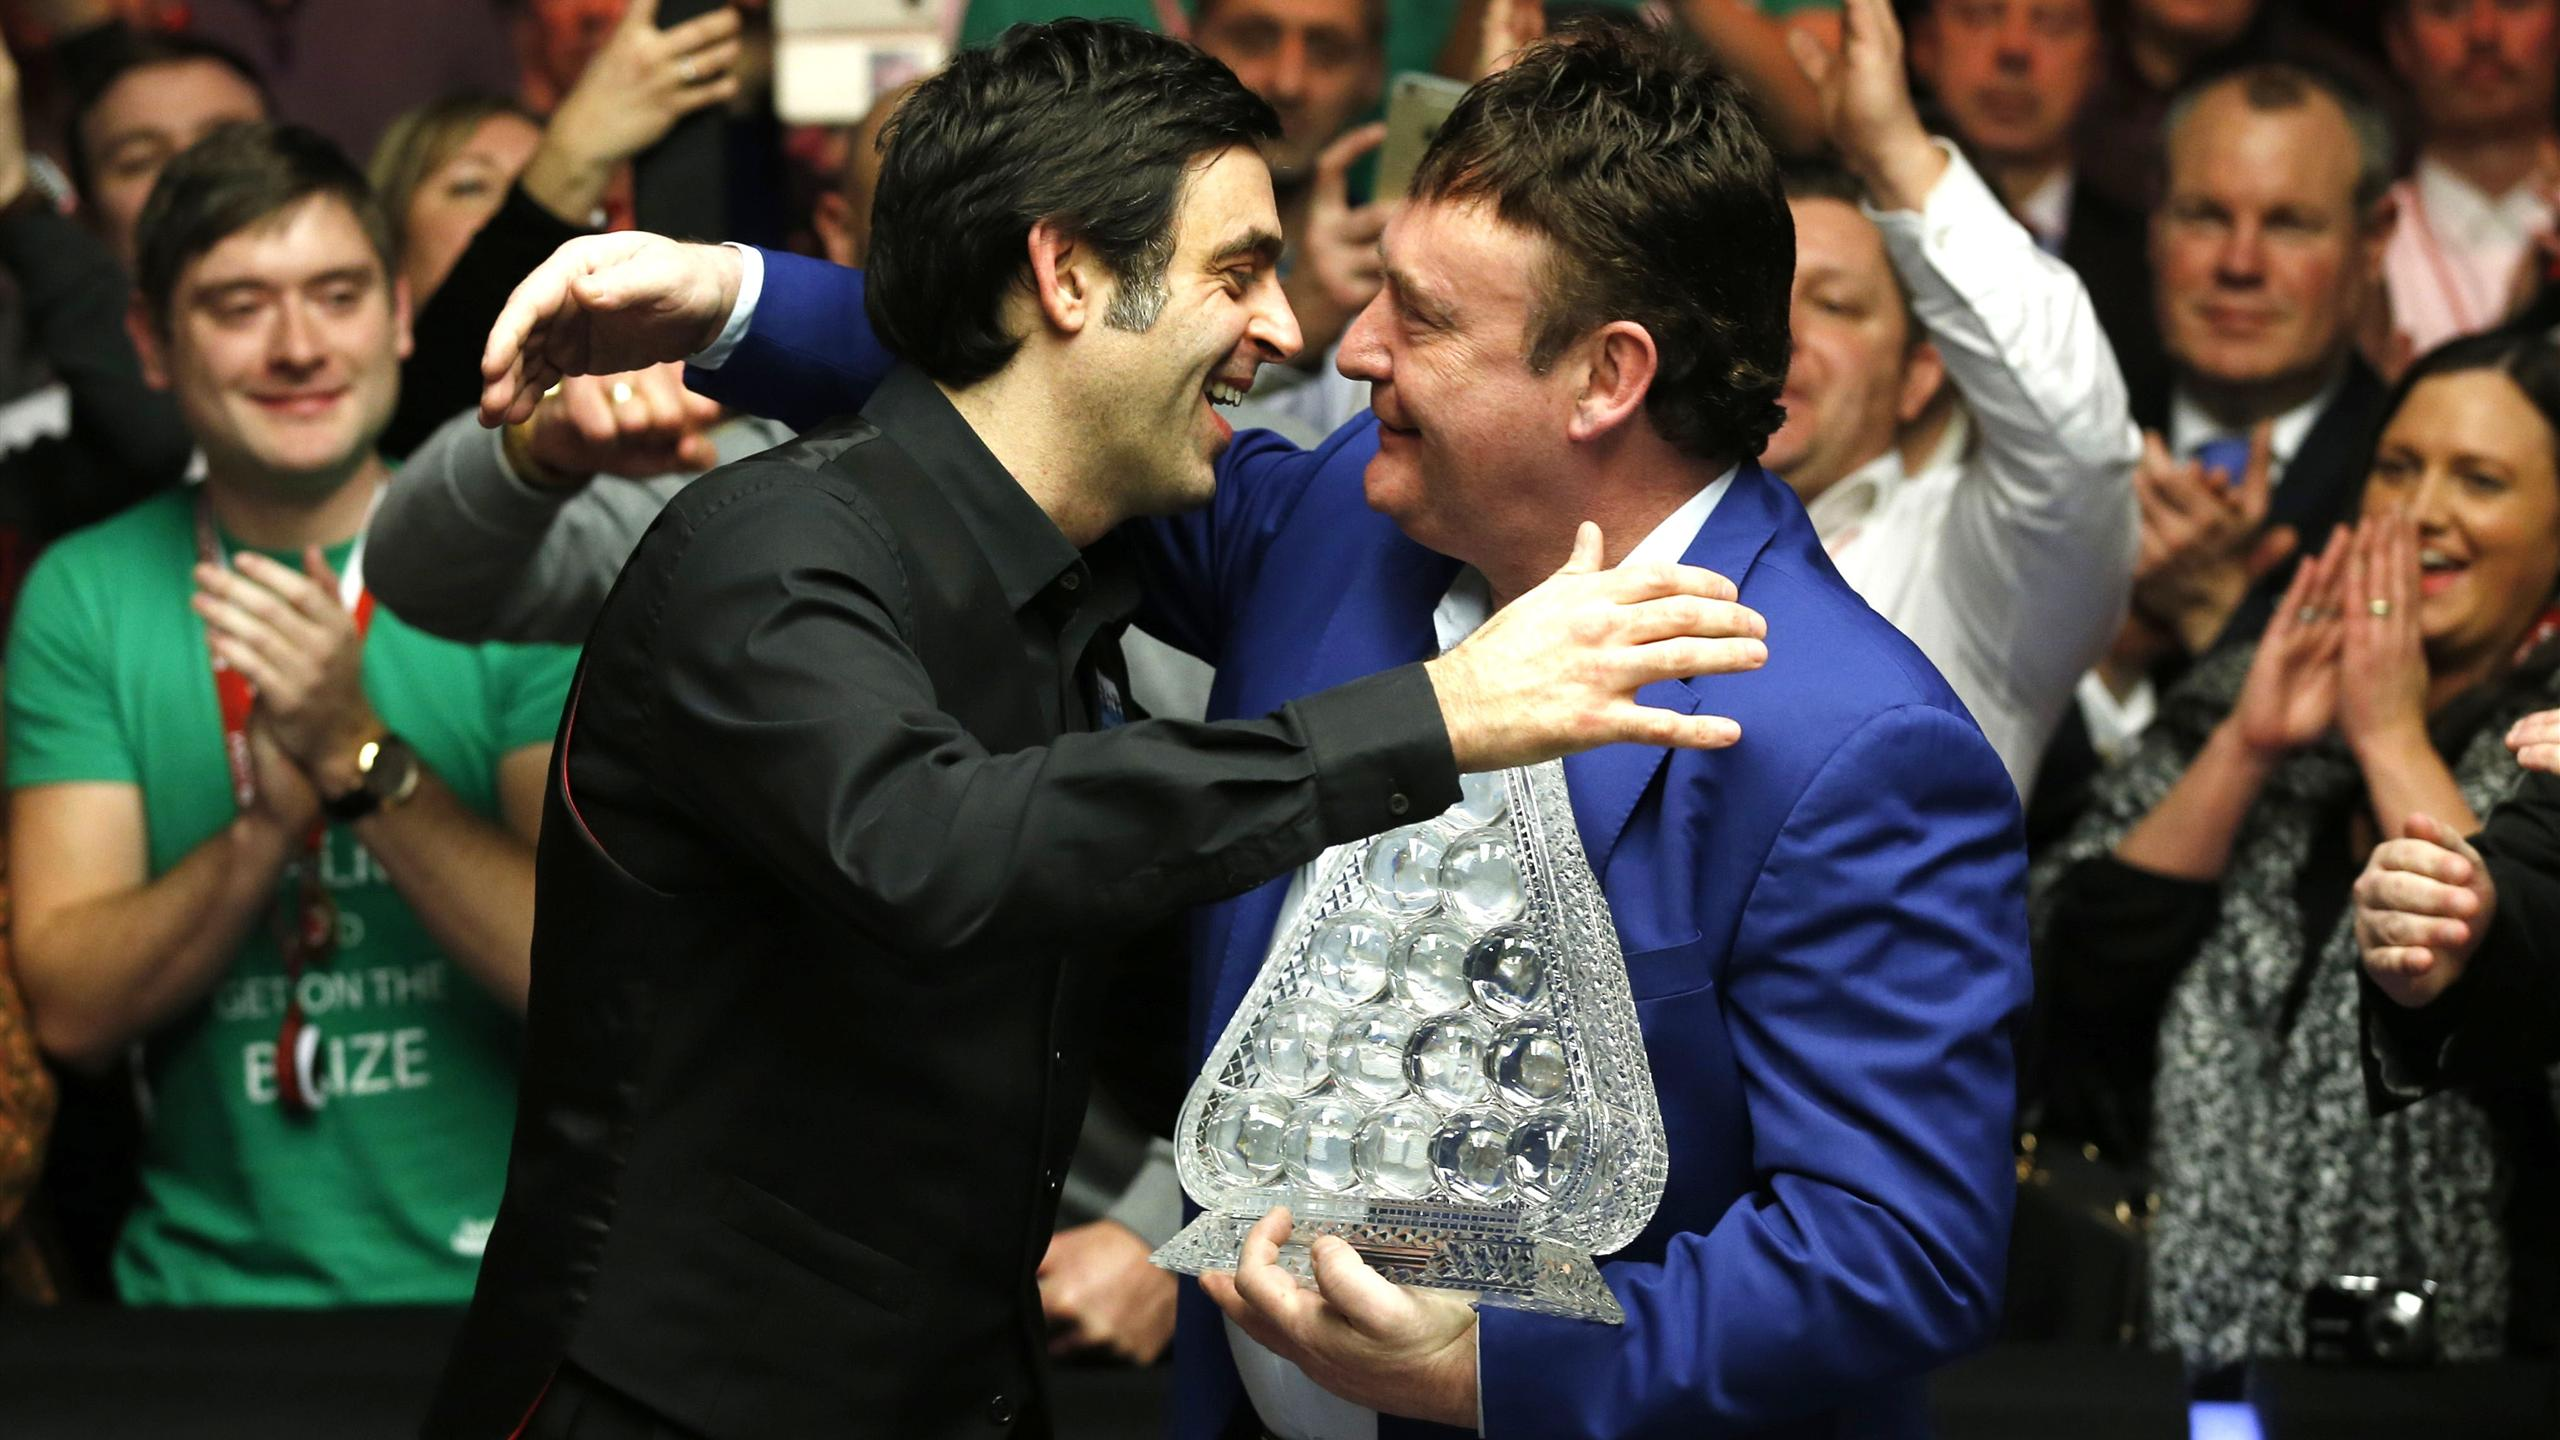 Jimmy White presents Ronnie O'Sullivan with the Masters trophy after victory in the final. Ronnie and Jimmy are Eurosport pundits at this week's German Masters.